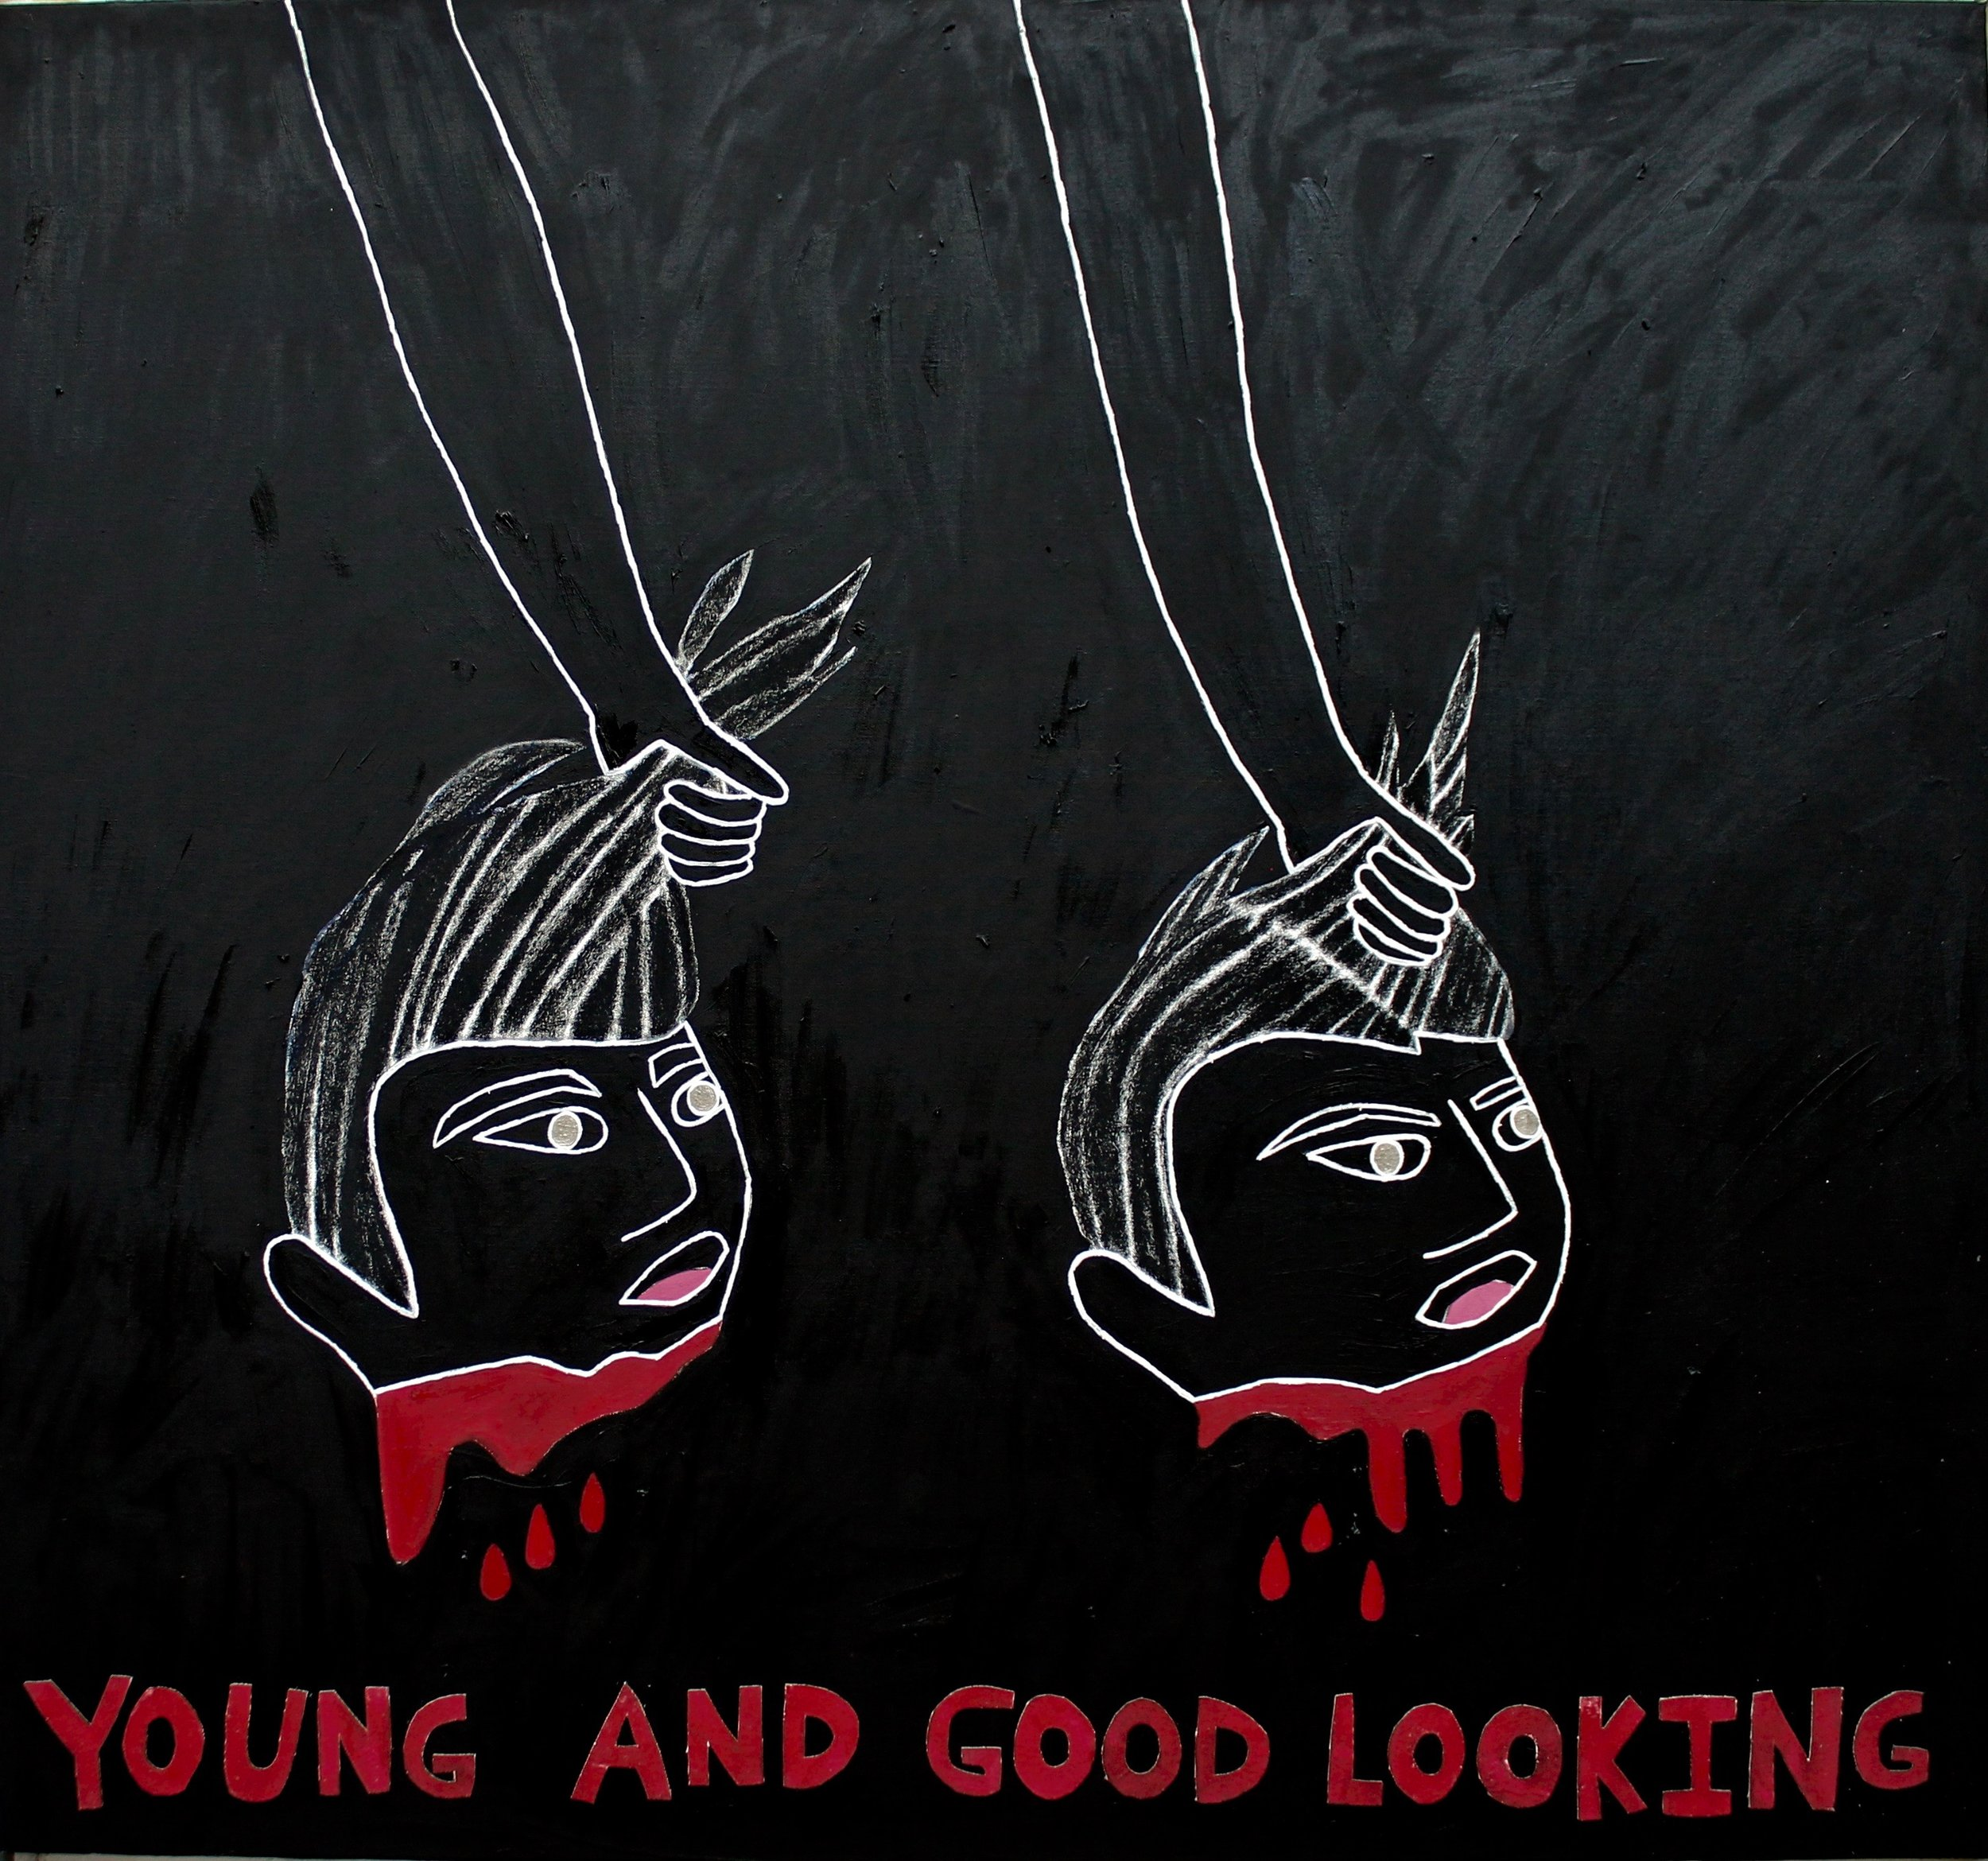 YOUNG AND GOOD LOOKING